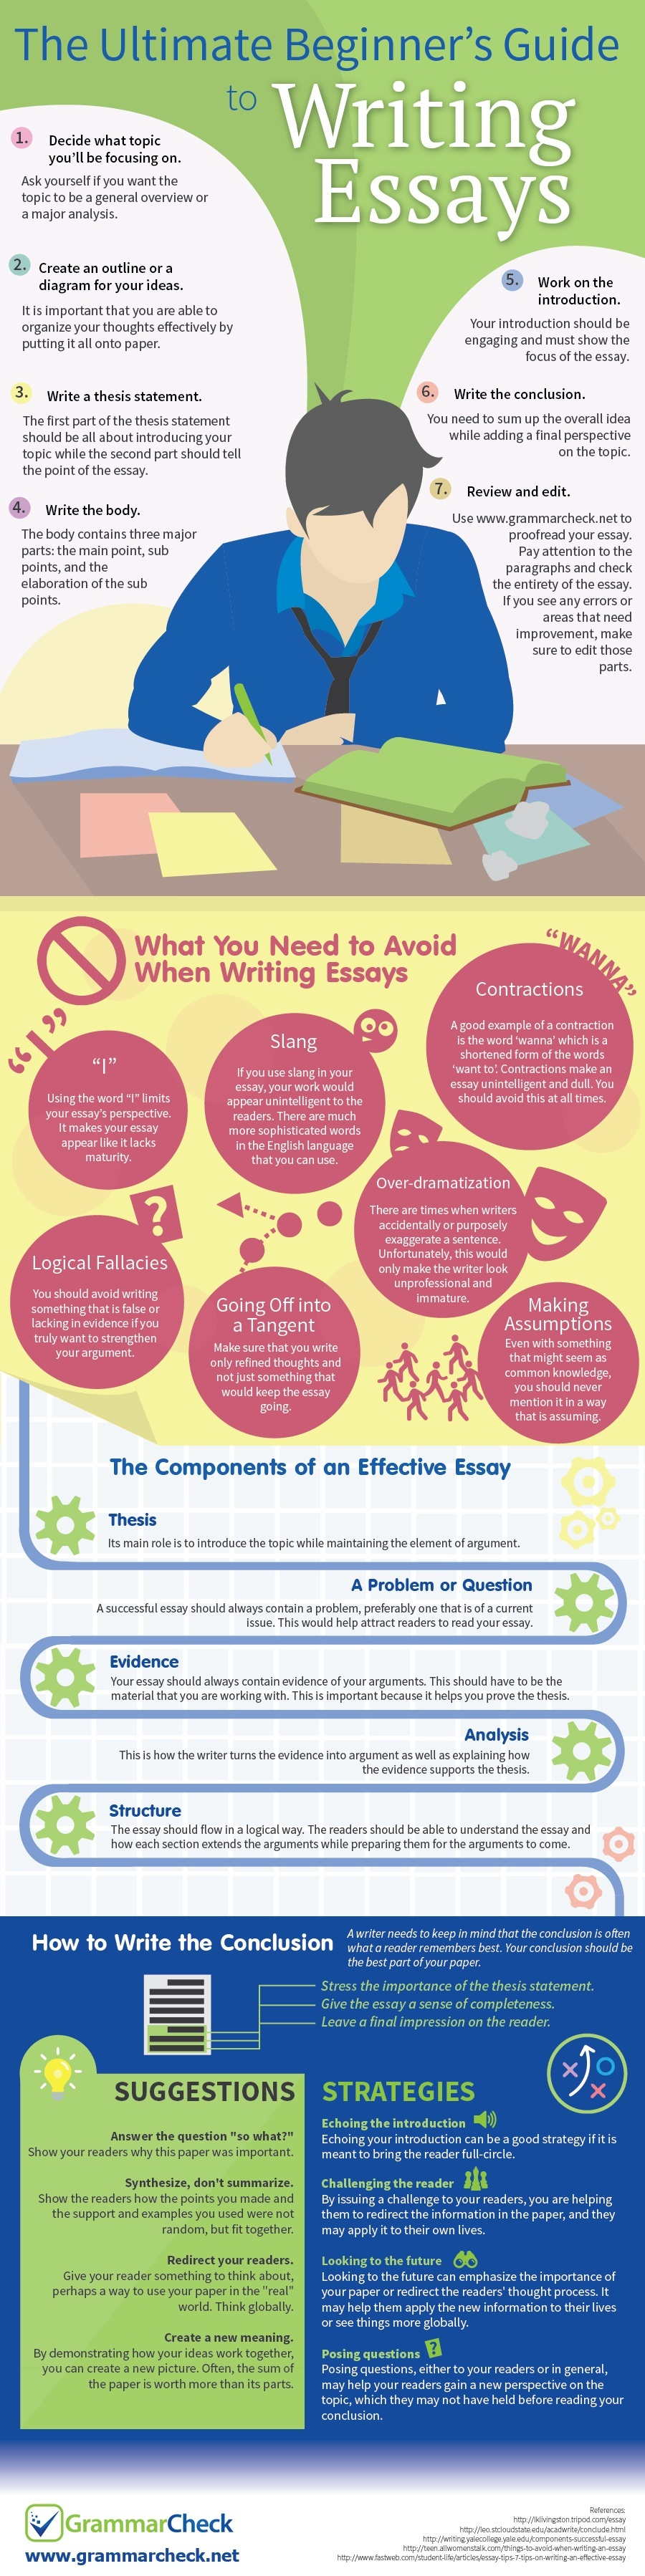 Division And Classification Essay  Essays On The Scarlet Letter also Design Essay Topics The Ultimate Beginners Guide To Writing Essays Infographic The Great Gatsby The American Dream Essay